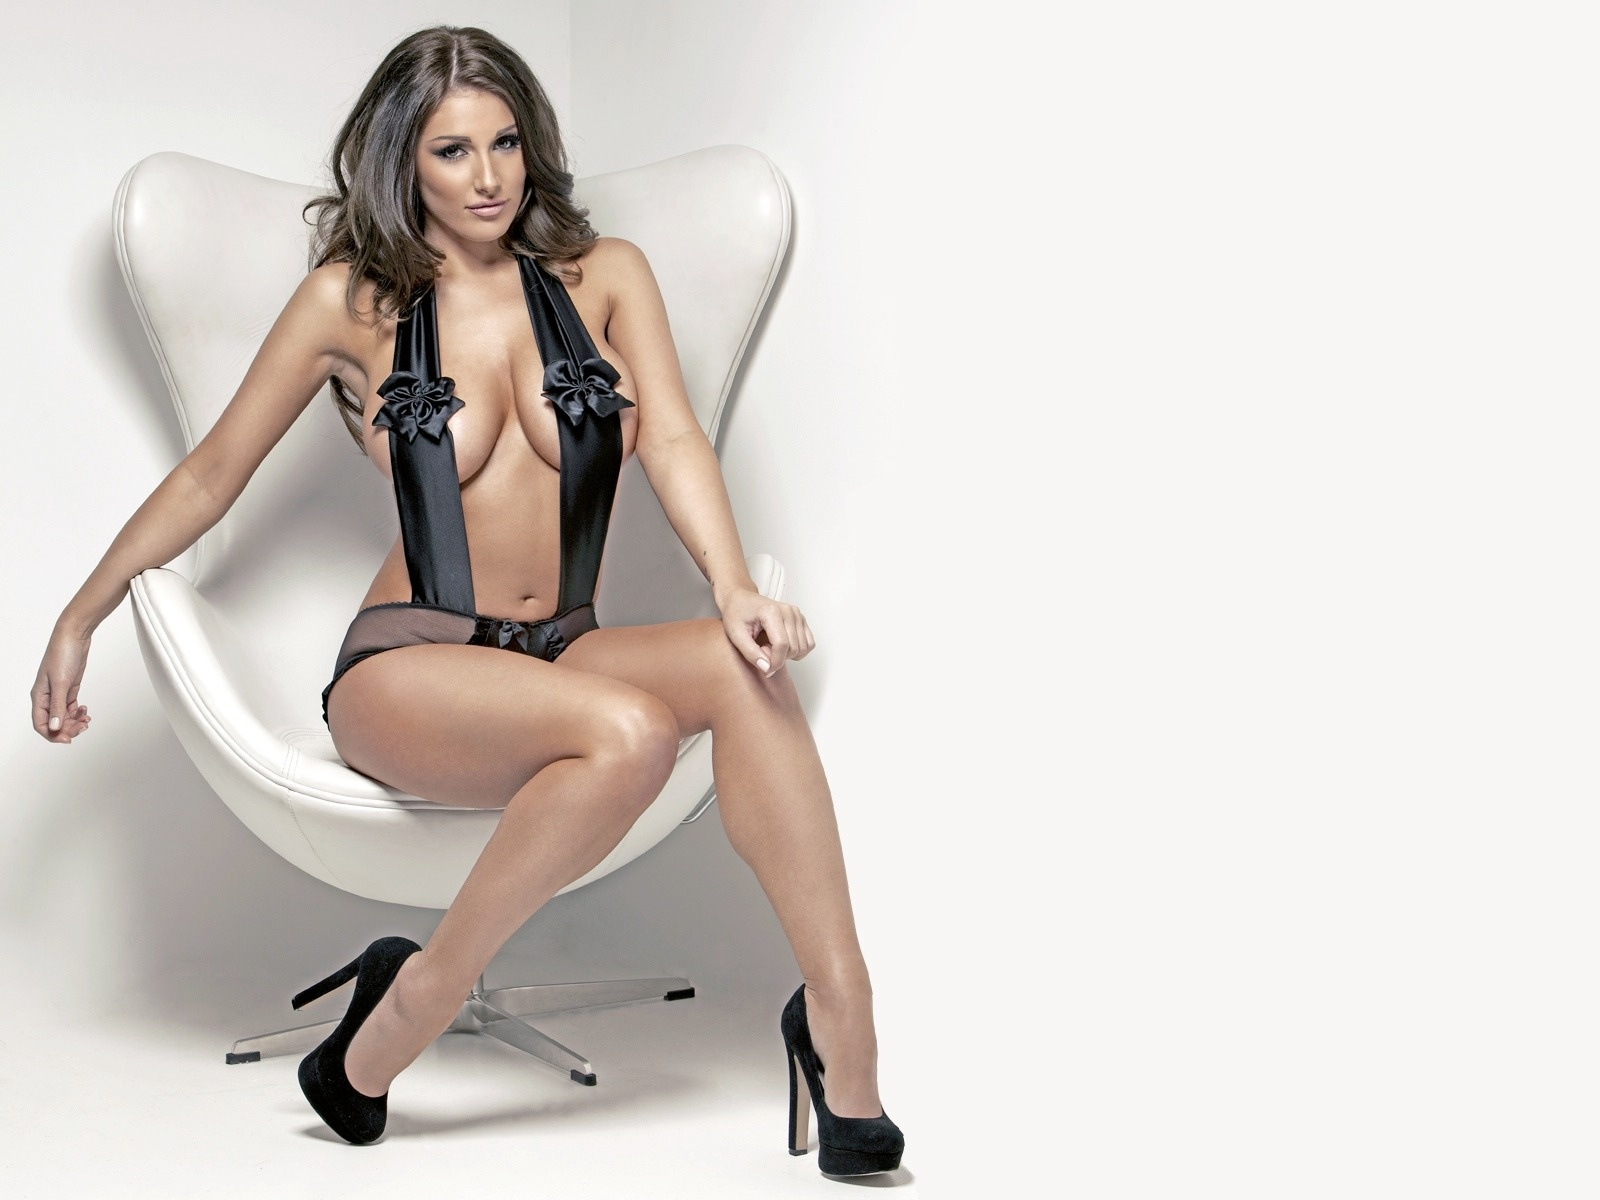 Makkhi Movie Hd Wallpaper Free Best Pictures Lucy Pinder Hot Amp Lucy Pinder Sexy